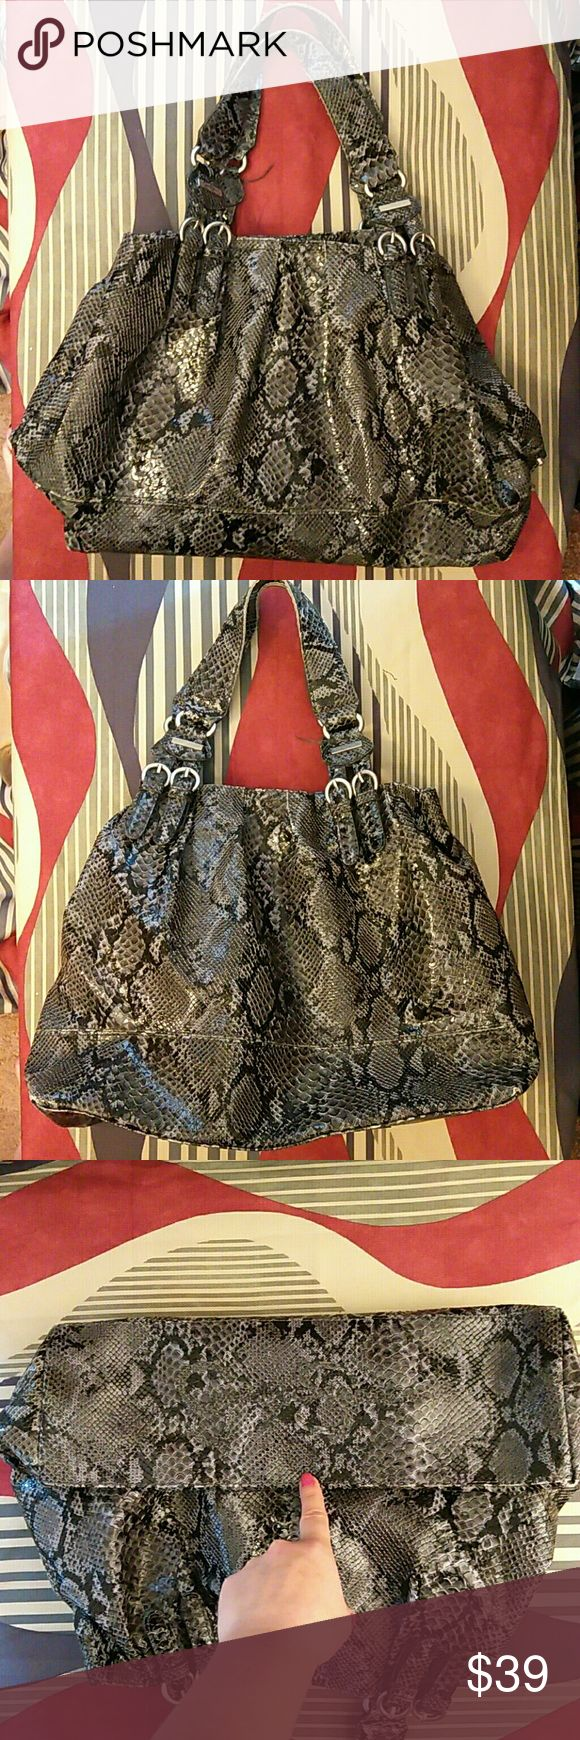 """Jessica Simpson Handbag Xlarge Handbag is in excellent condition. Very clean inside and out. Gray, black and white snakeskin print. 3 compartments with silver accents. Measures 19""""L X 12.5""""H. Jessica Simpson Bags"""